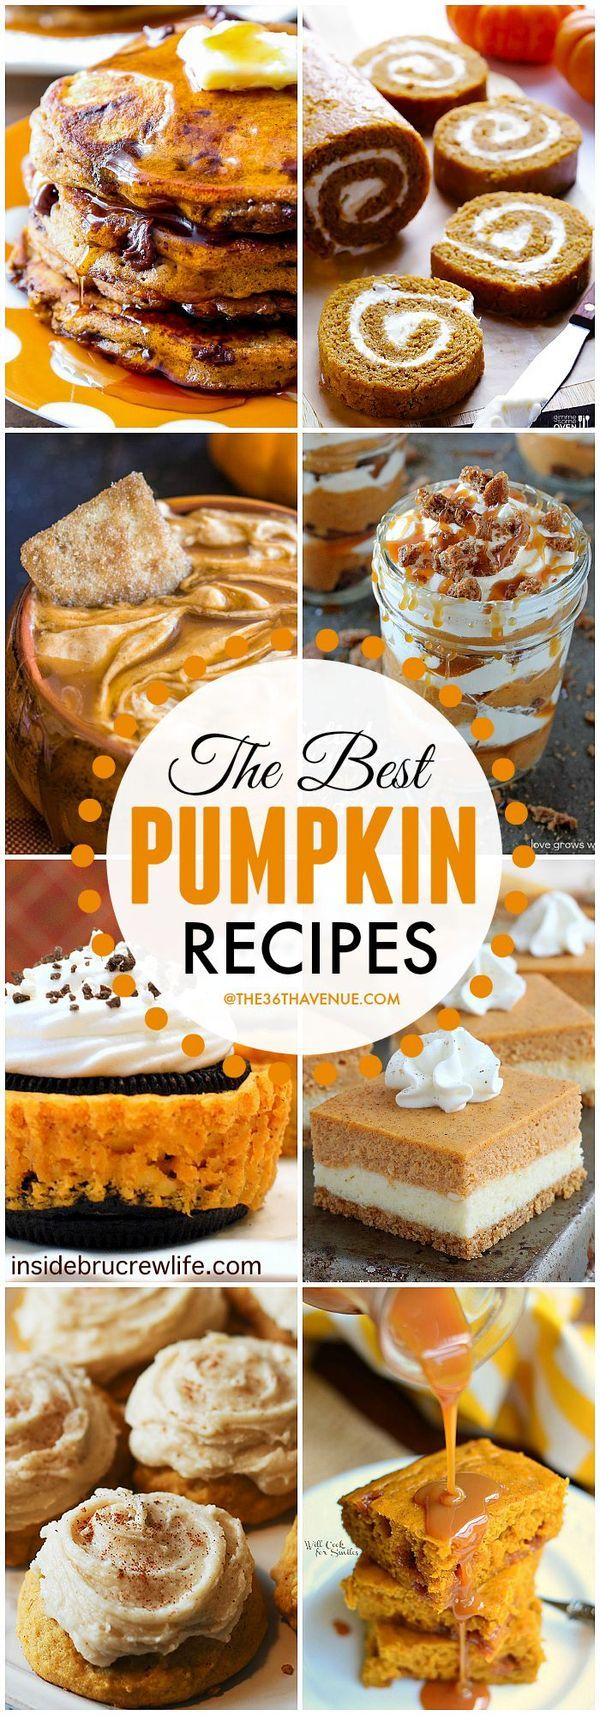 Recipes - Best Pumpkin Recipes. These are super good! desserts, baked goods,  fall recipes, and more.